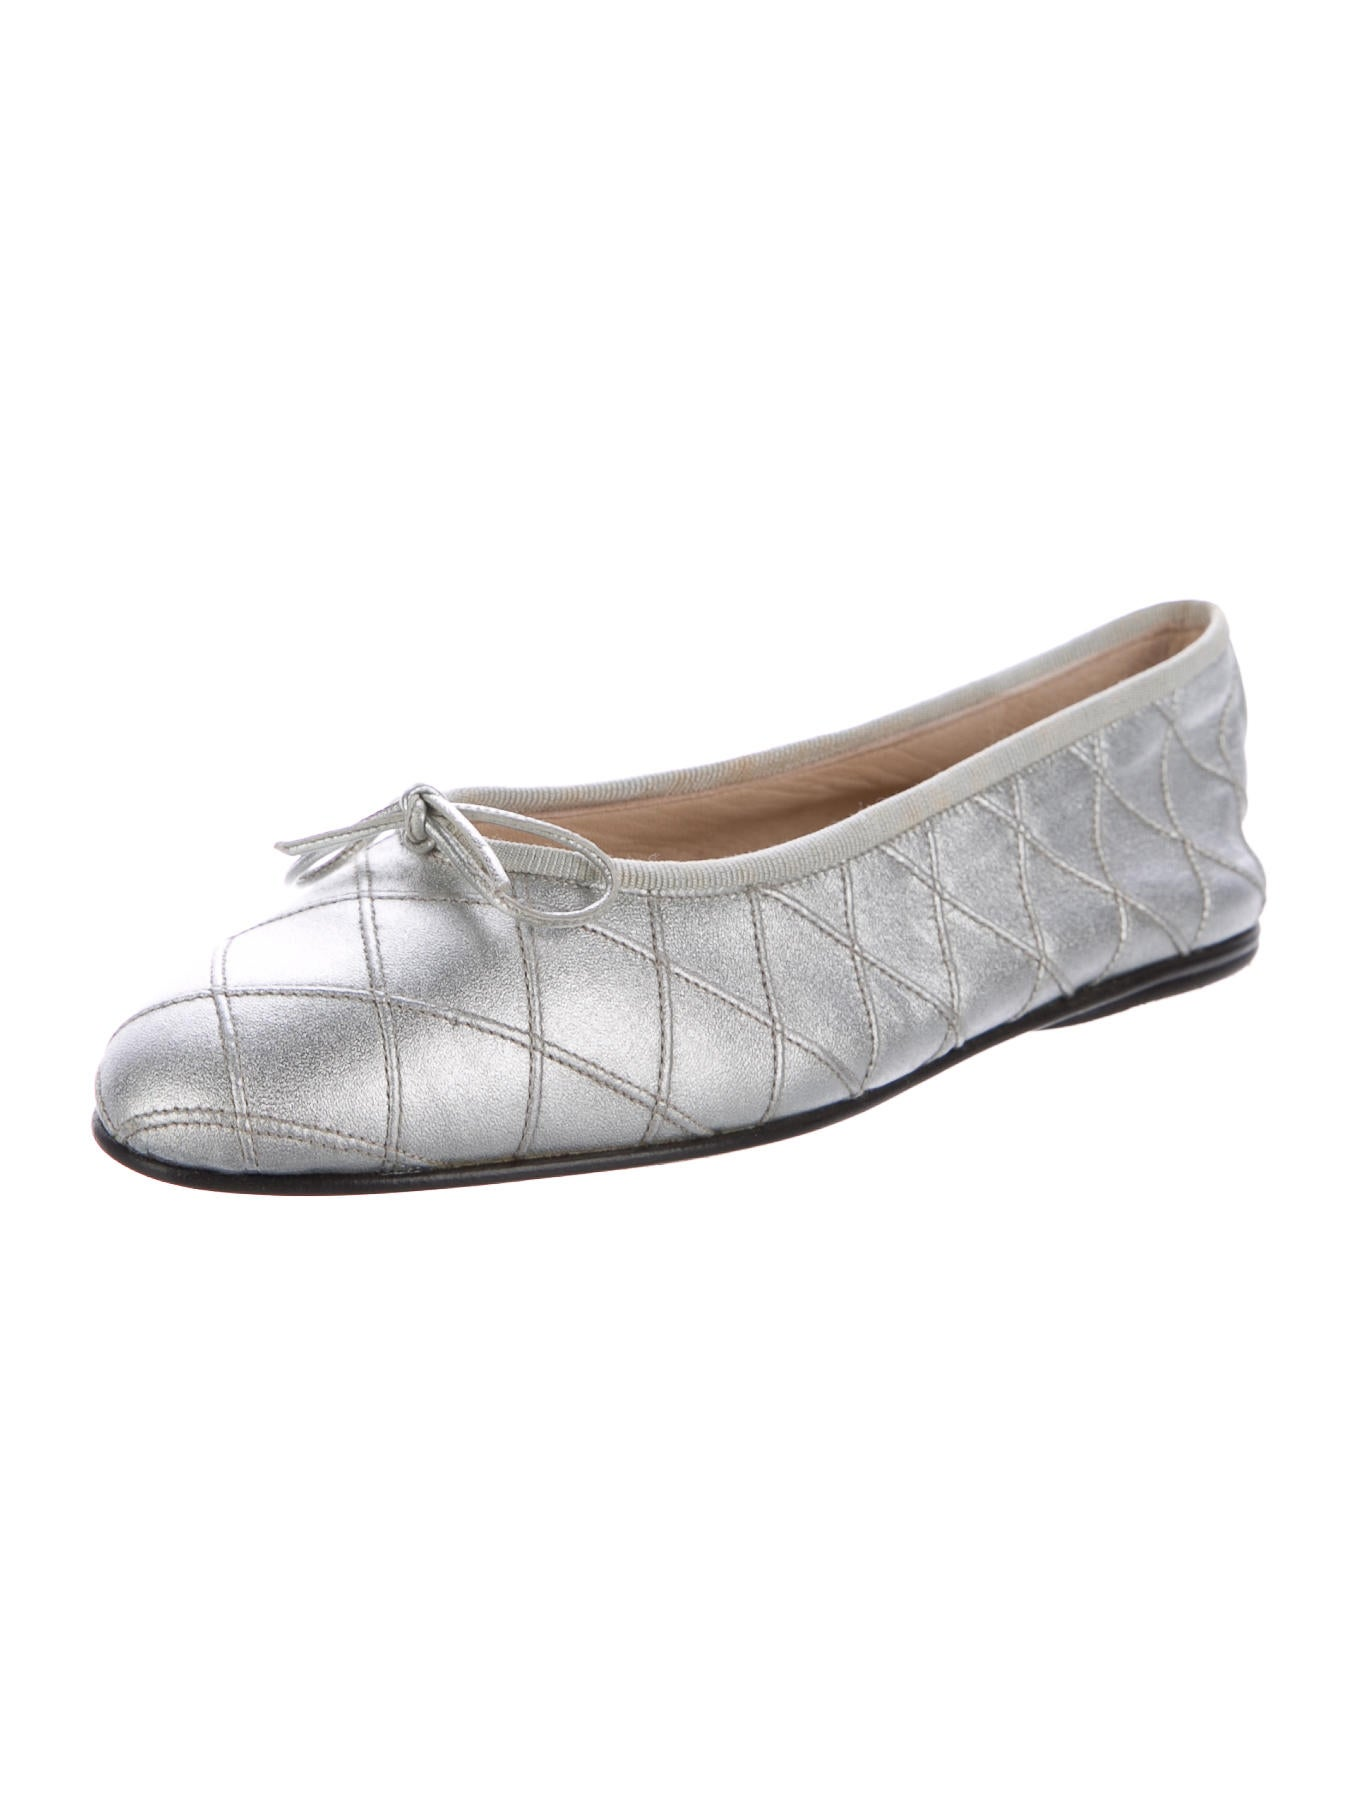 Taryn Rose Quilted Leather Ballet Flats - Reese is rated out of 5 by 1. Rated 5 out of 5 by missannette from Beautiful and comfortable ballet flats I purchased the wine color and wore them yesterday for the first time all day. I am a teacher and stand a lot and these shoes were SO comfortable.5/5(1).